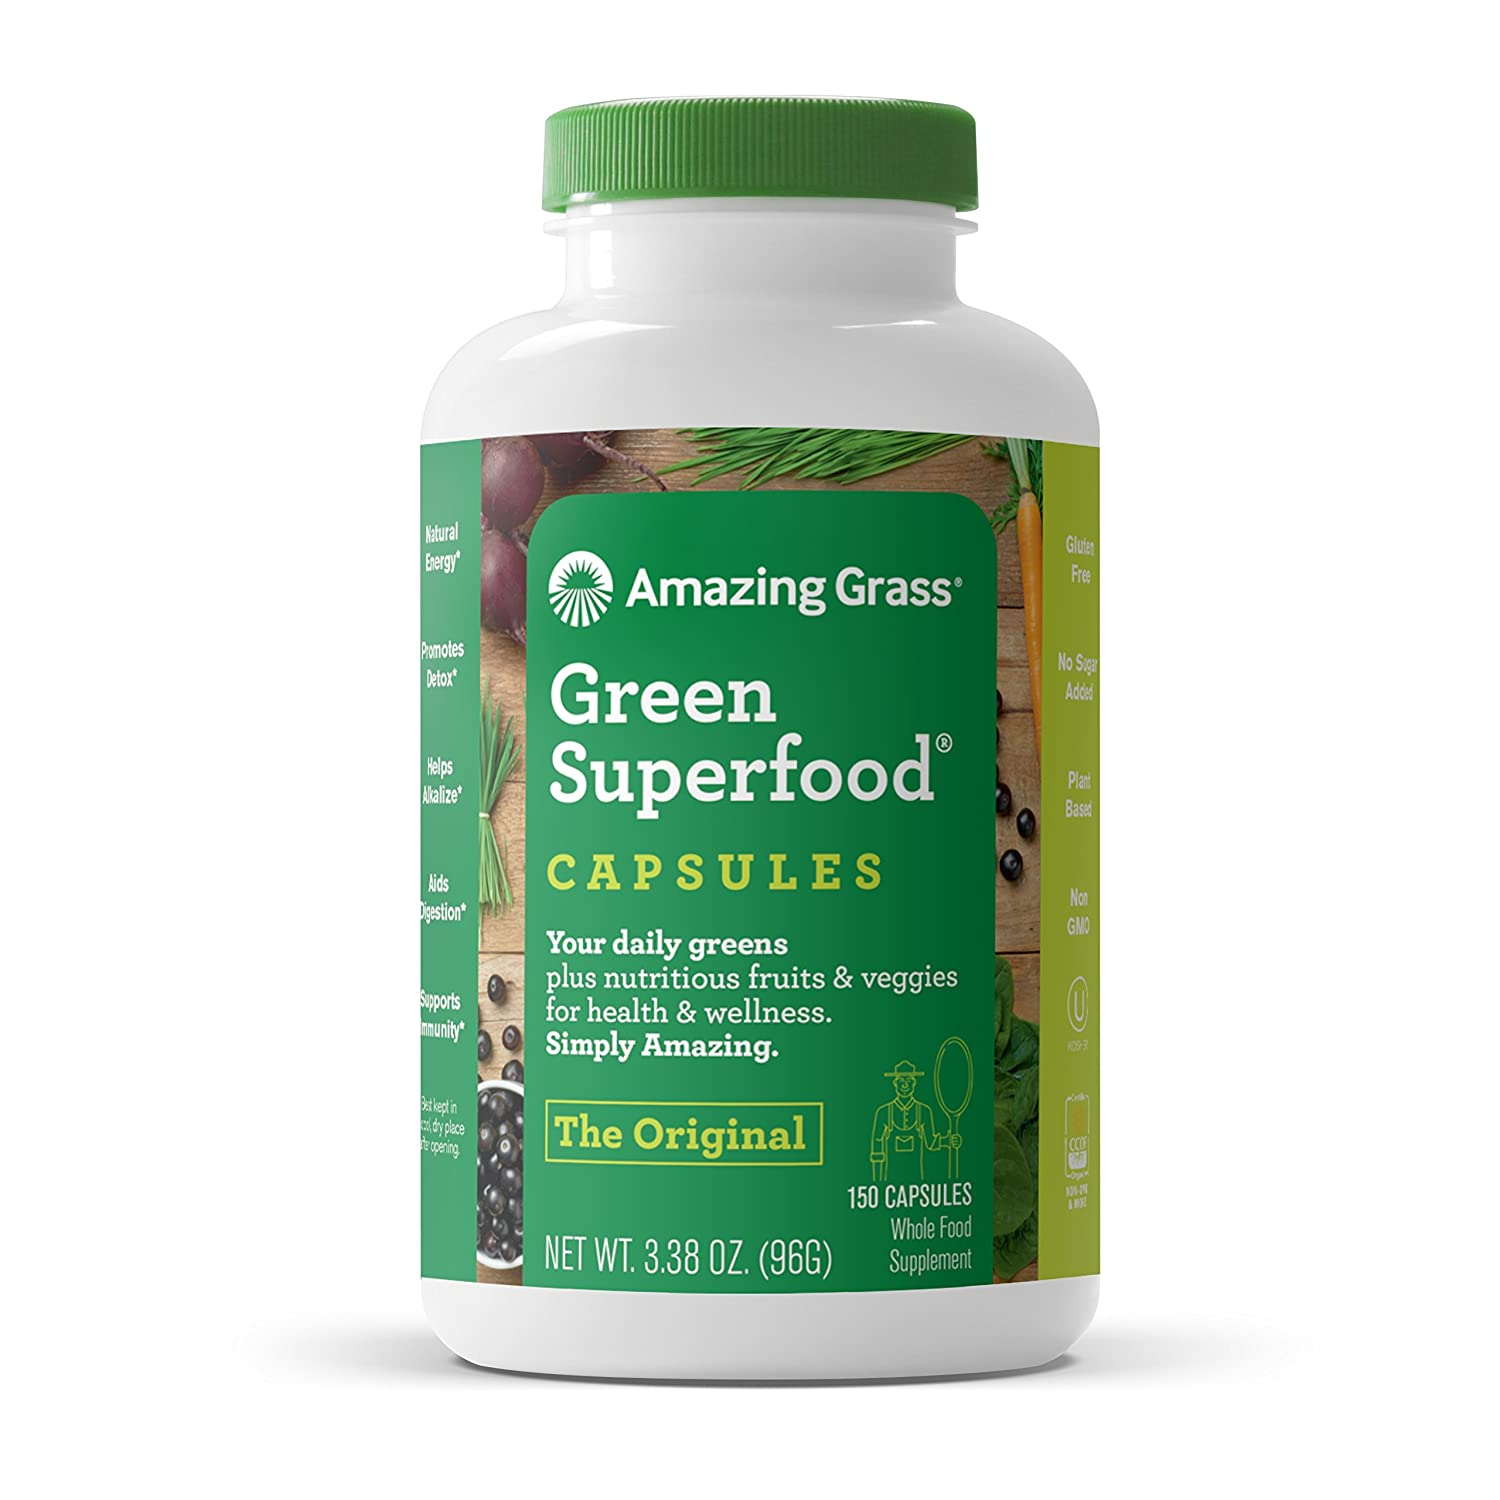 Amazing Grass Green Superfood Capsules Organic Wheat Grass and 7 Super Greens, 3 servings of Greens, Fruits Veggies, 150 Capsules